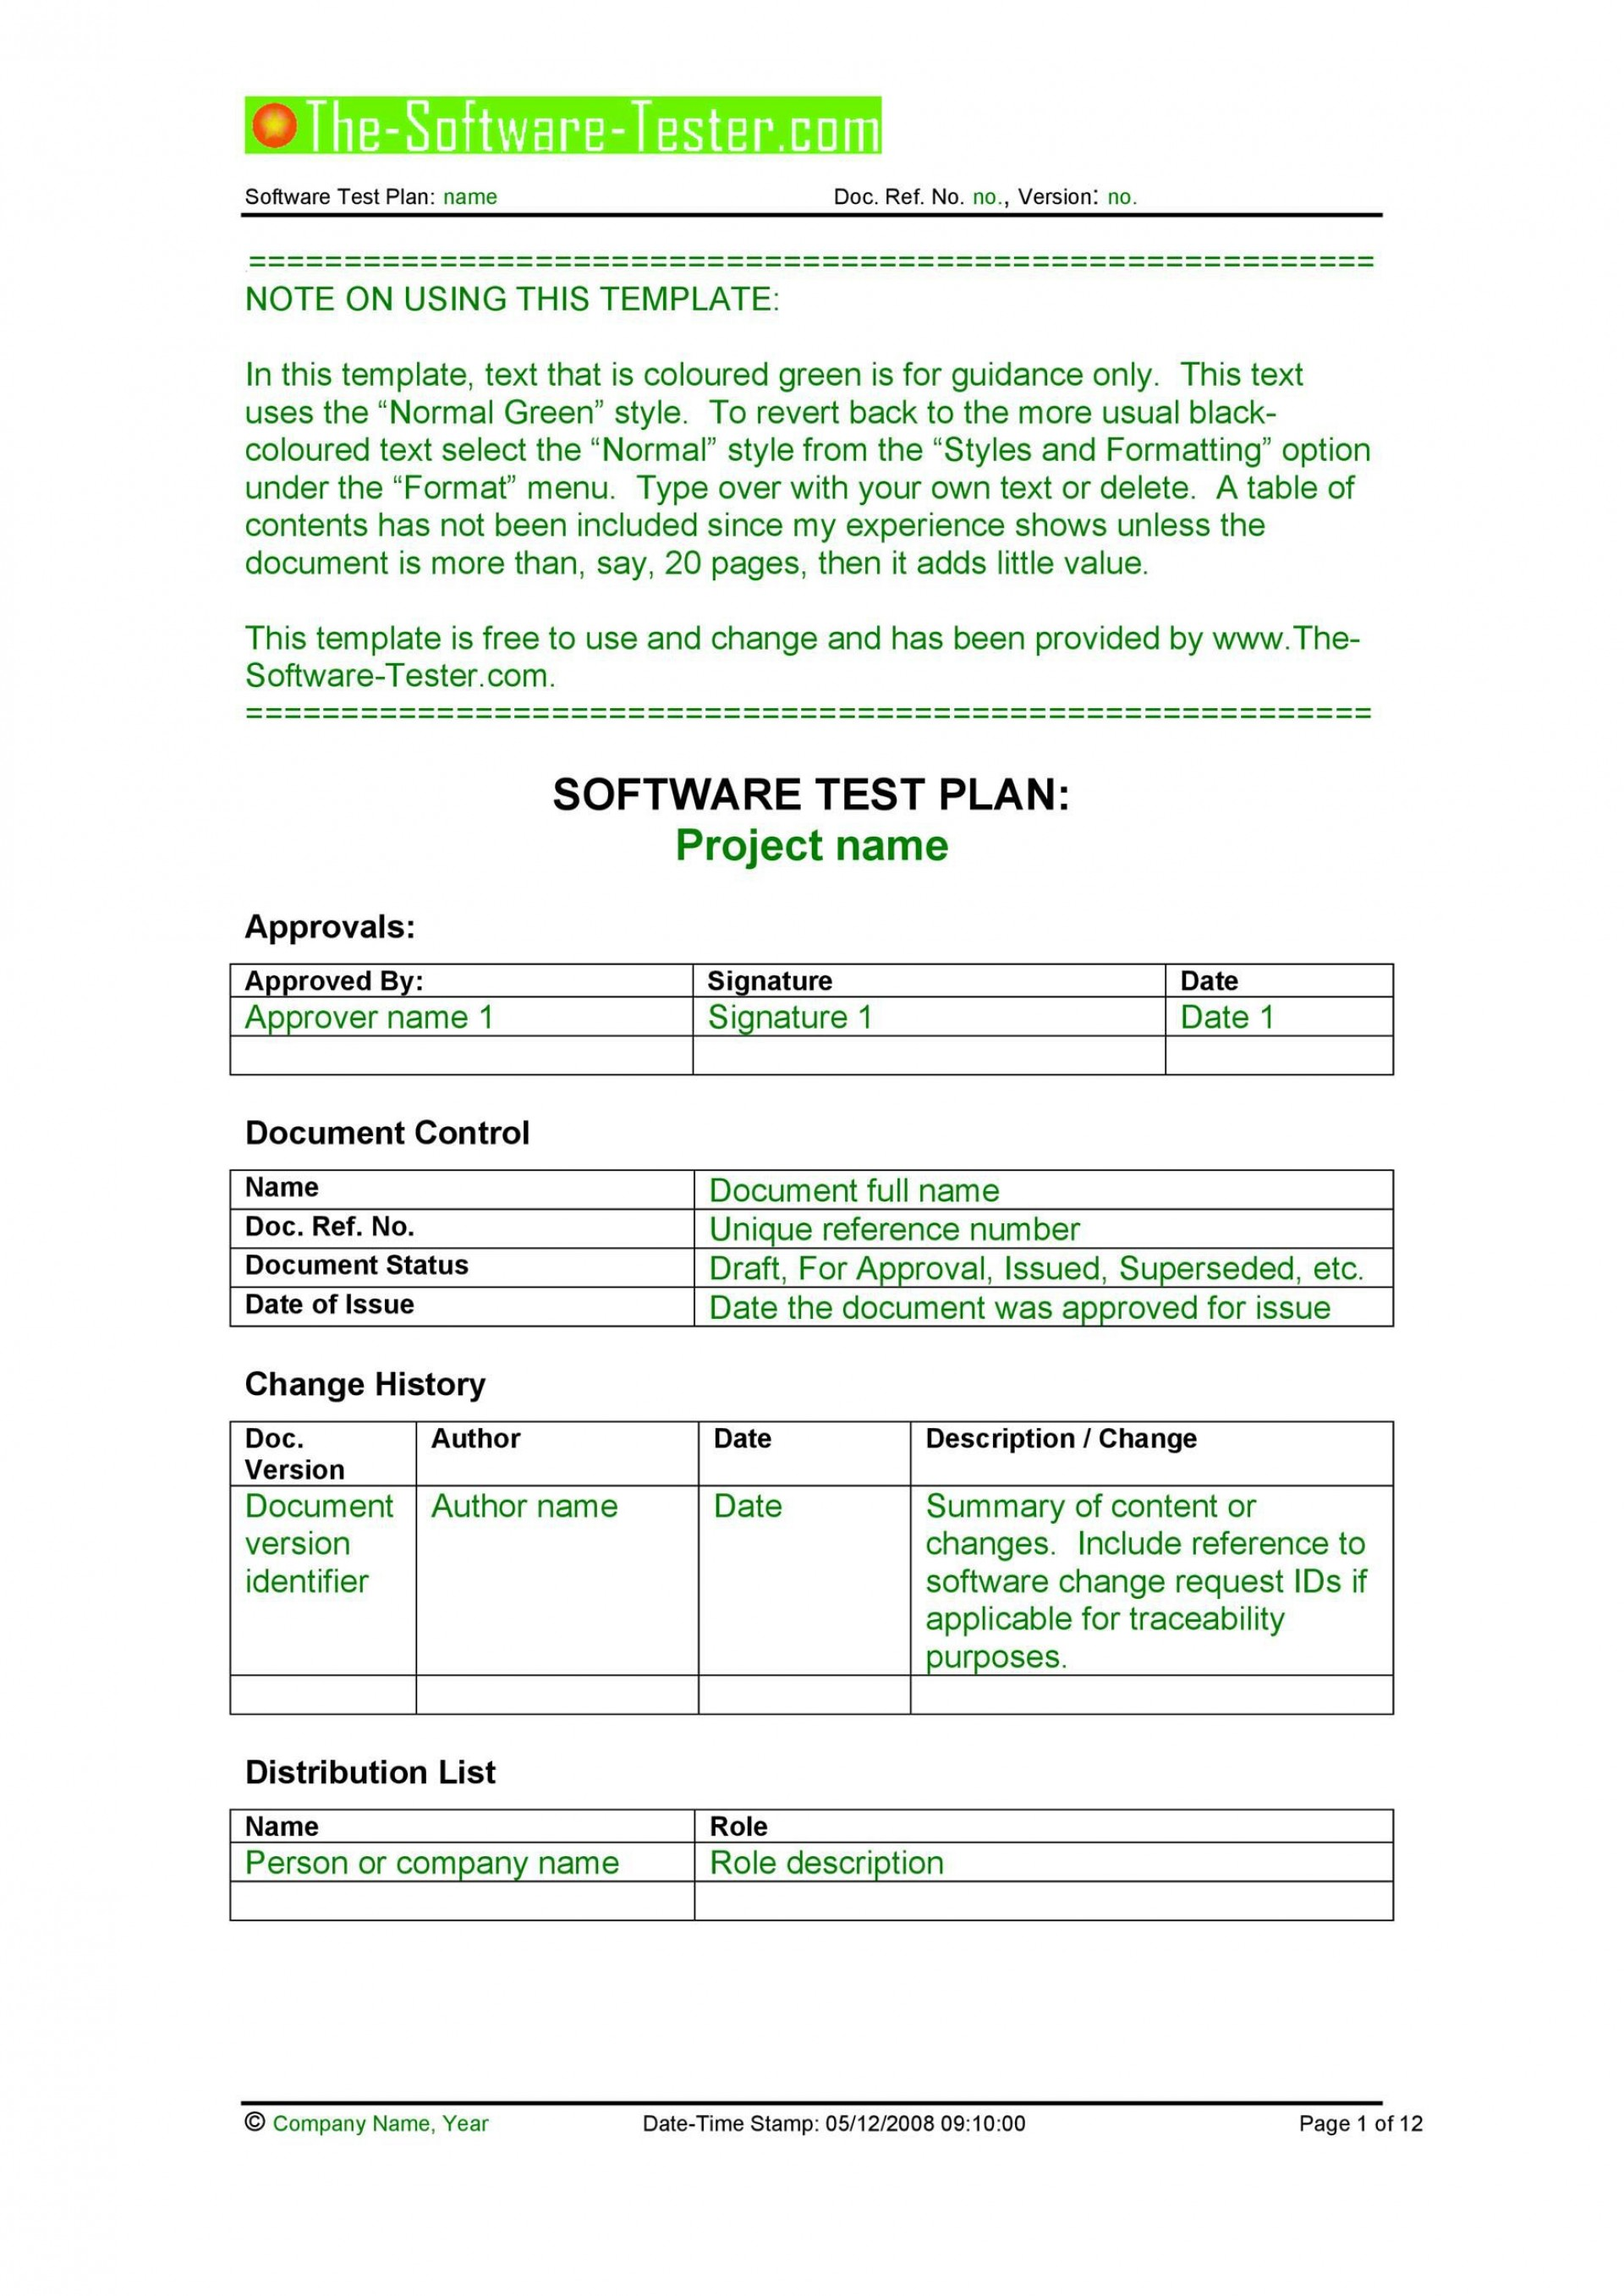 005 Surprising Simple Application Test Plan Template High Def  Word Software Excel1920